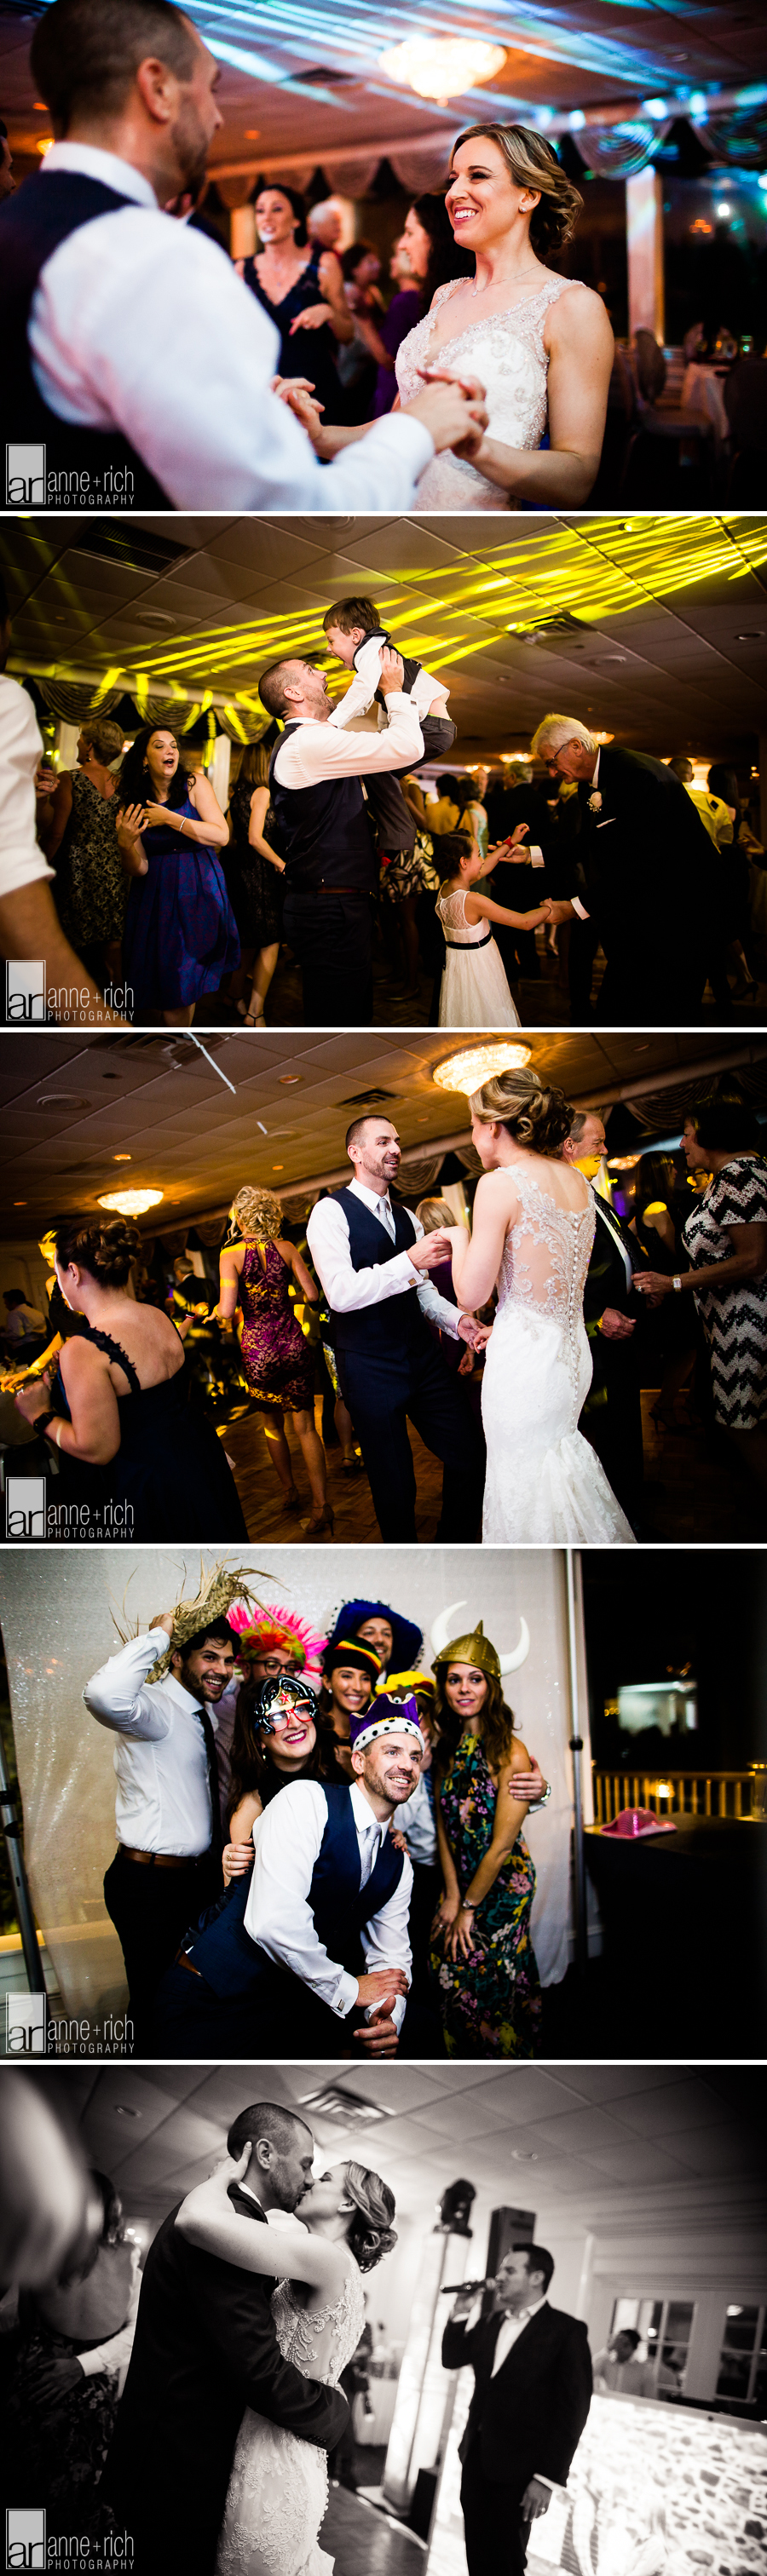 baskingridgecountryclubwedding09d